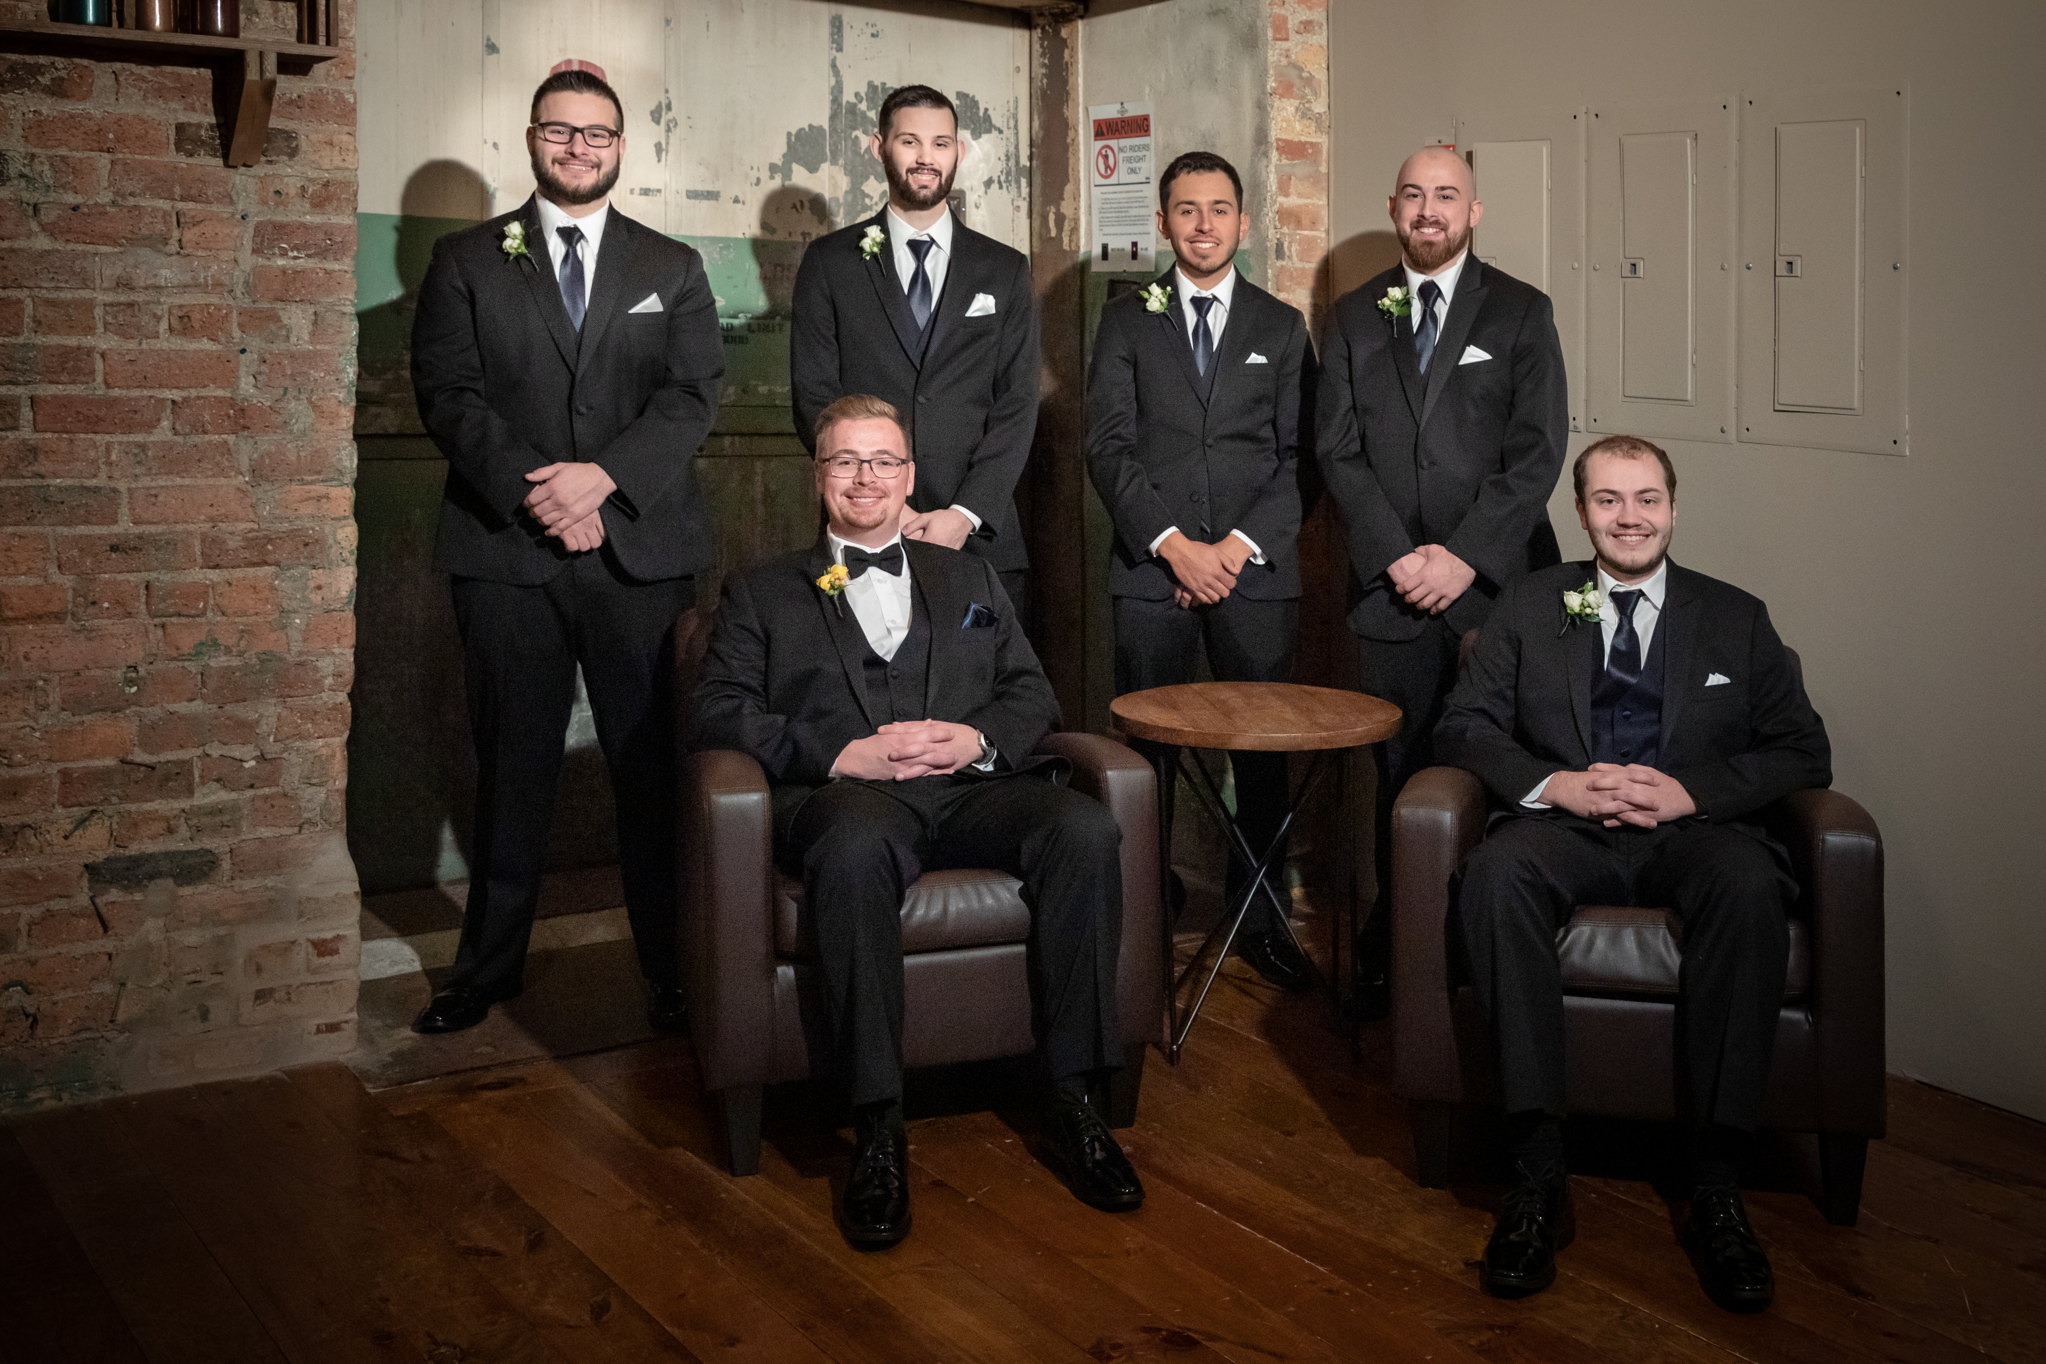 groomsman_wedding_photography.jpg